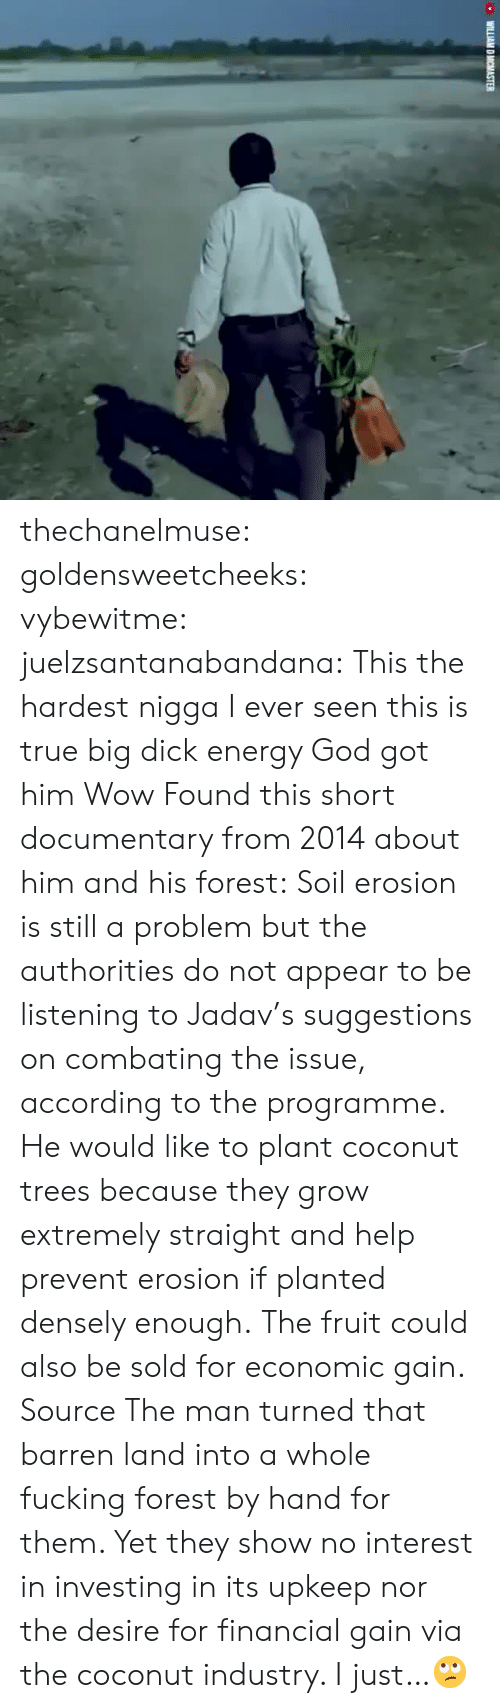 economic: thechanelmuse: goldensweetcheeks:  vybewitme:   juelzsantanabandana:  This the hardest nigga I ever seen this is true big dick energy   God got him    Wow  Found this short documentary from 2014 about him and his forest:  Soil erosion is still a problem but the authorities do not appear to be listening to Jadav's suggestions on combating the issue, according to the programme. He would like to plant coconut trees because they grow extremely straight and help prevent erosion if planted densely enough. The fruit could also be sold for economic gain. Source  The man turned that barren land into a whole fucking forest by hand for them. Yet they show no interest in investing in its upkeep nor the desire for financial gain via the coconut industry. I just…🙄